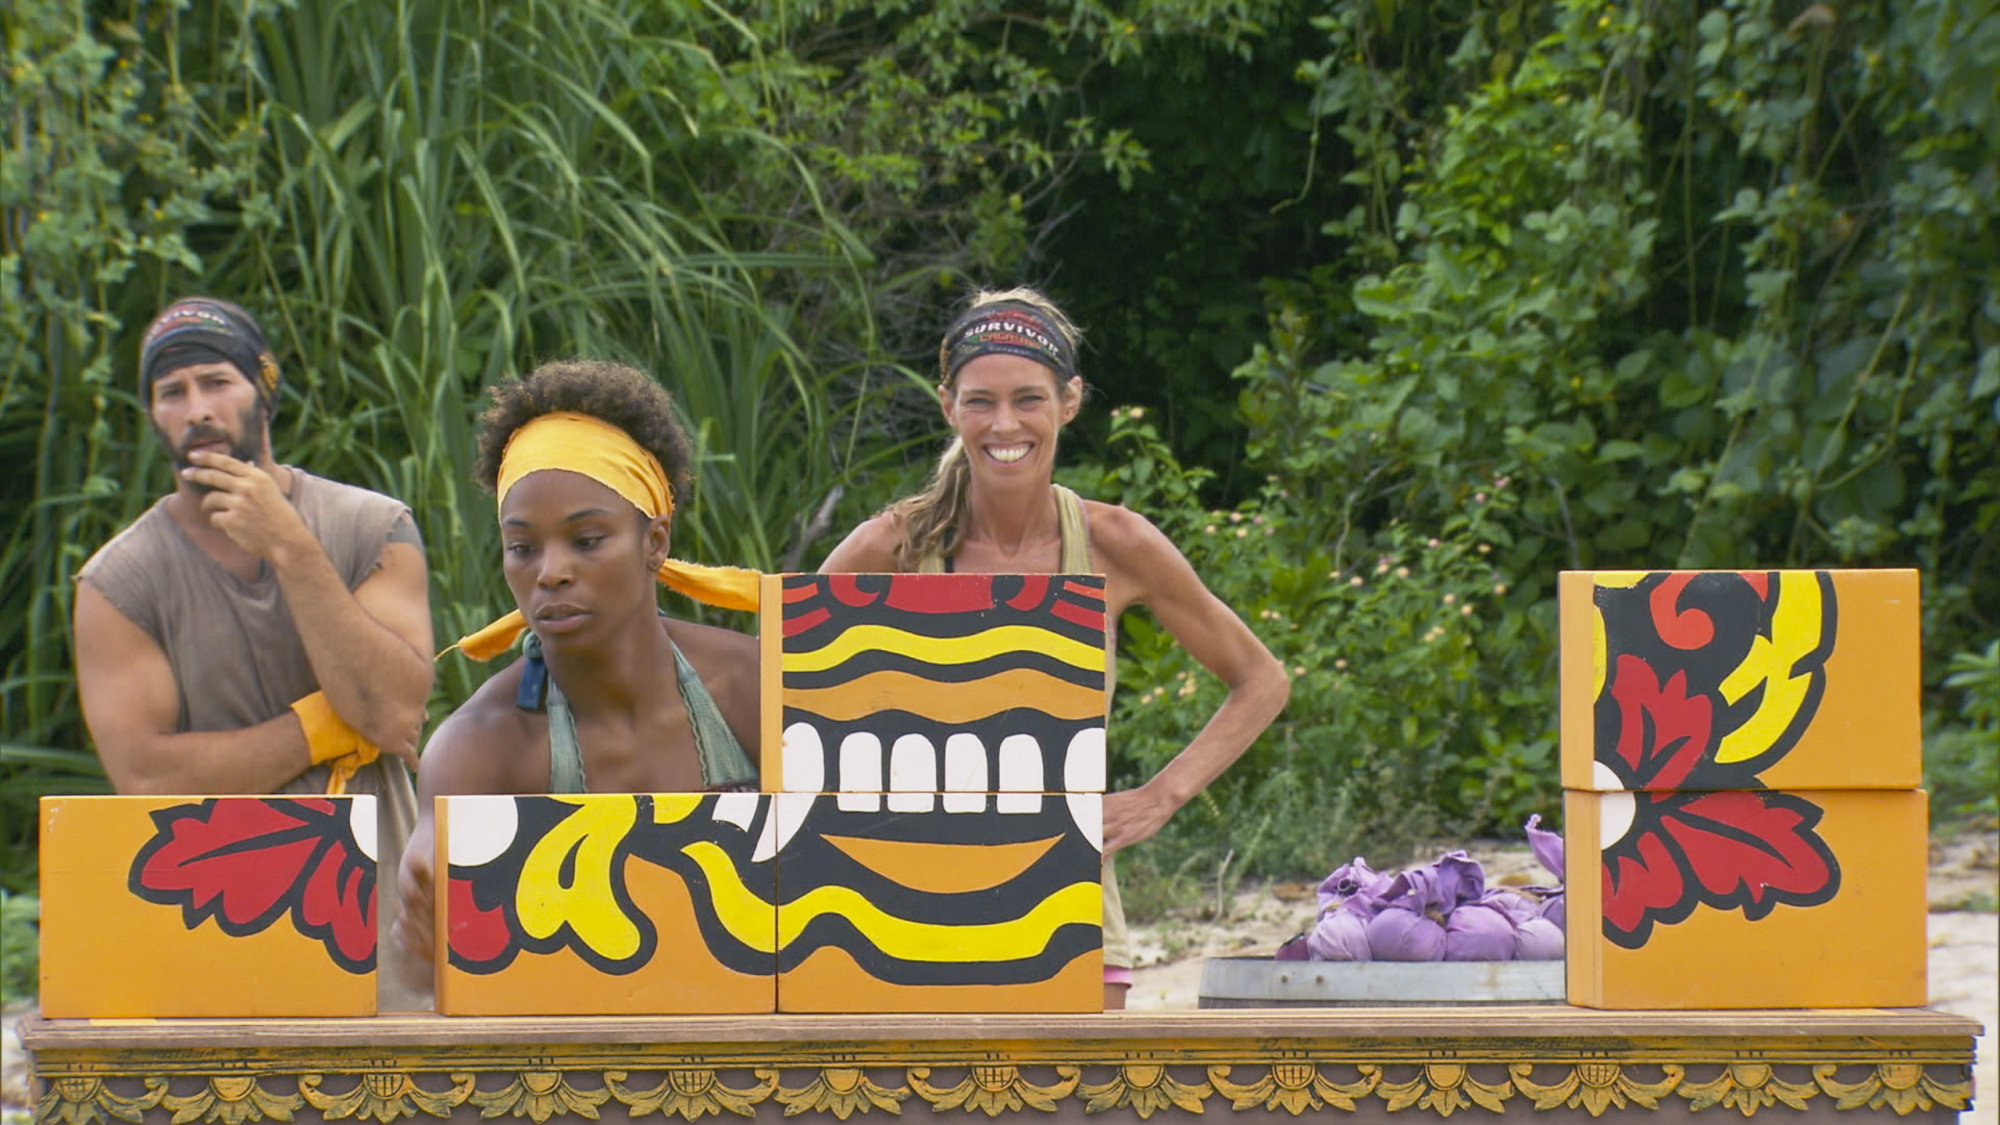 Reward challenge competition in Season 28 Episode 11